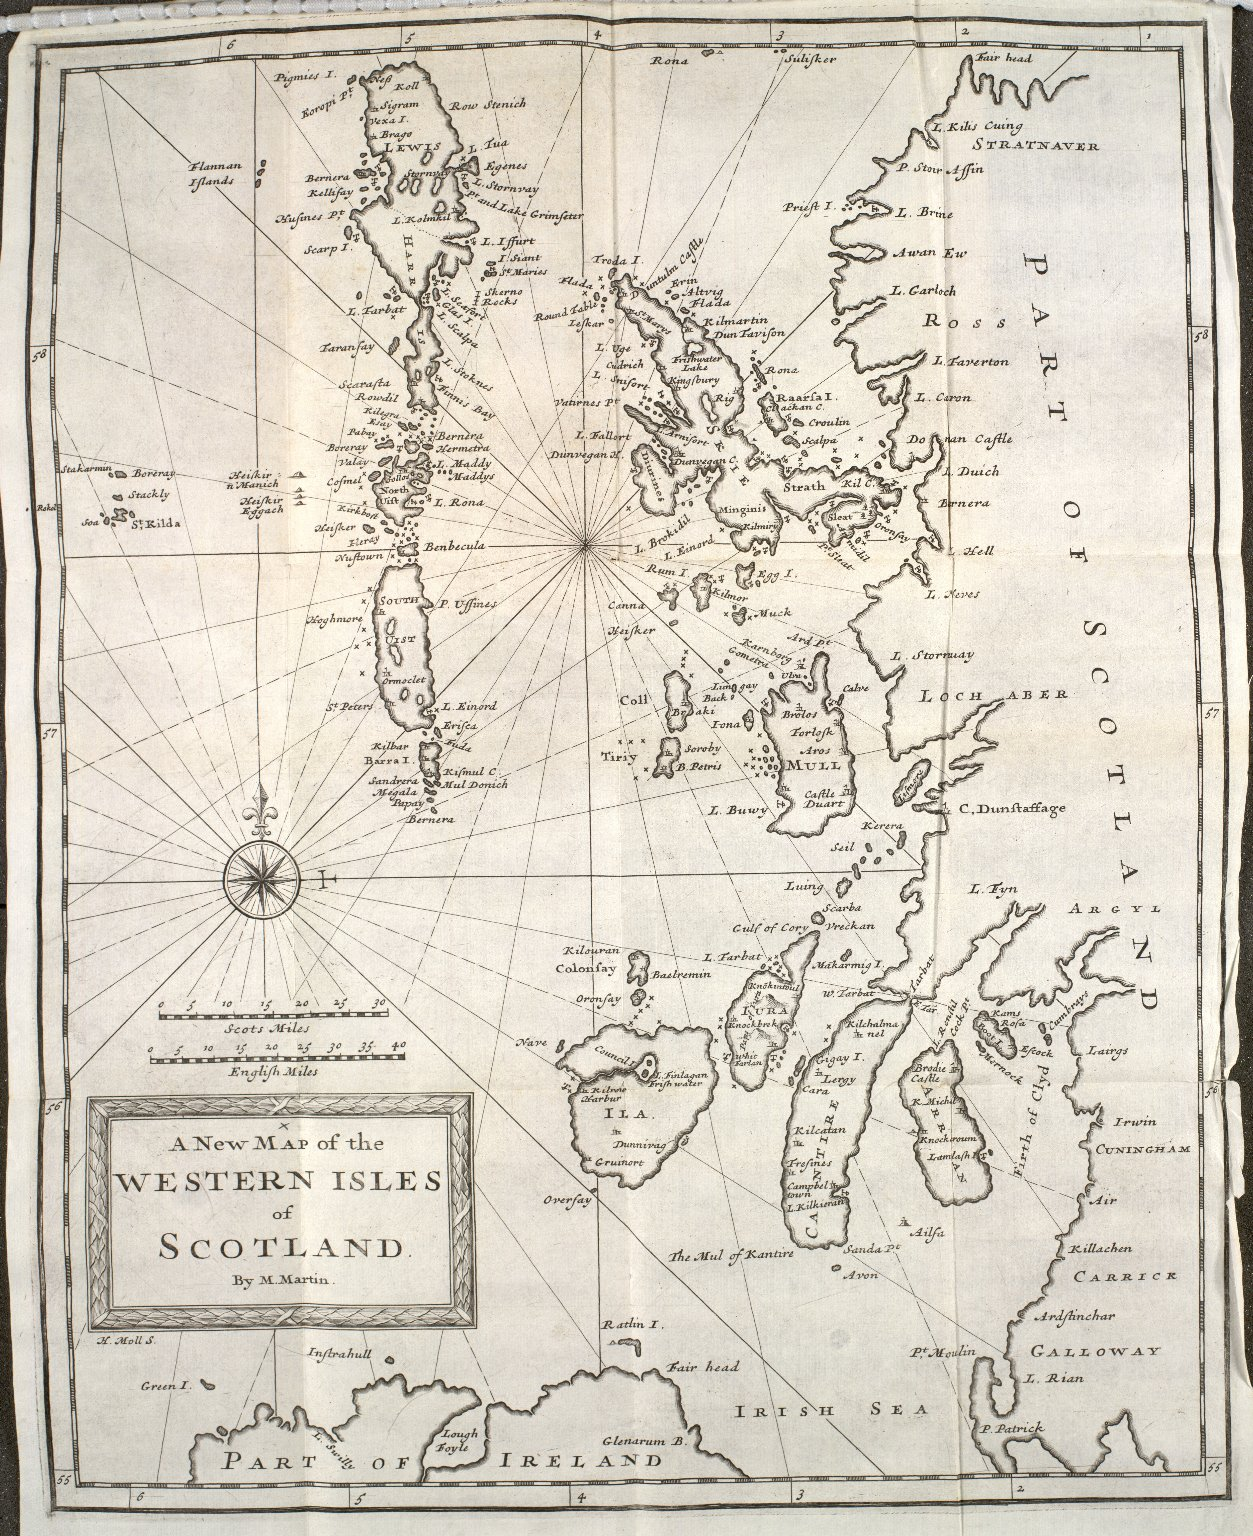 A New Map of the Western Isles of Scotland [1 of 1]